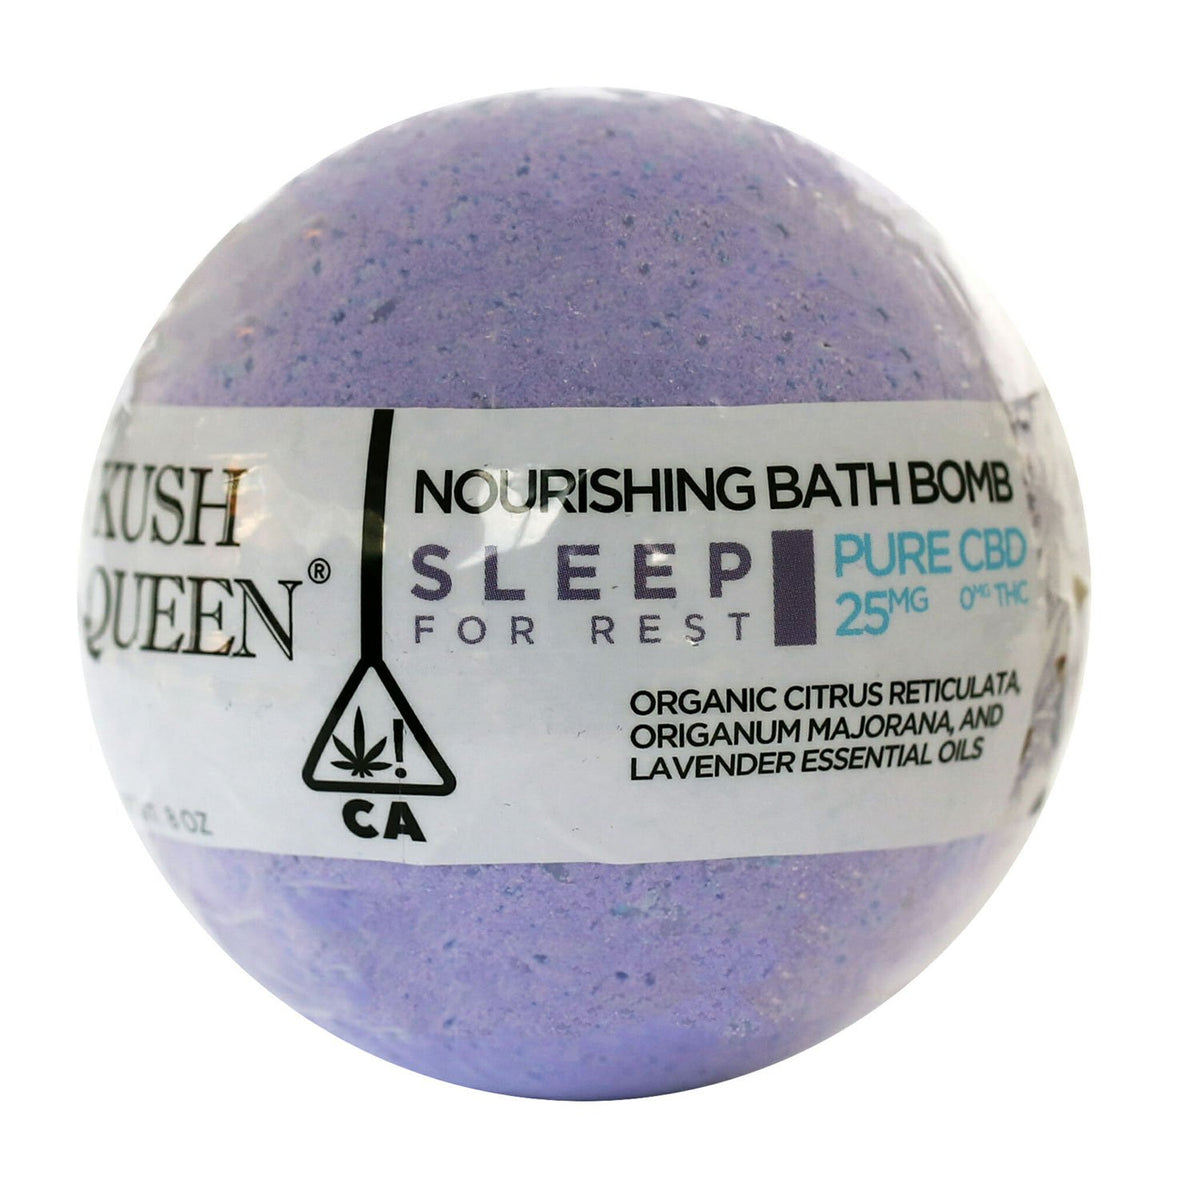 SLEEP CBD BATH BOMB REJECT